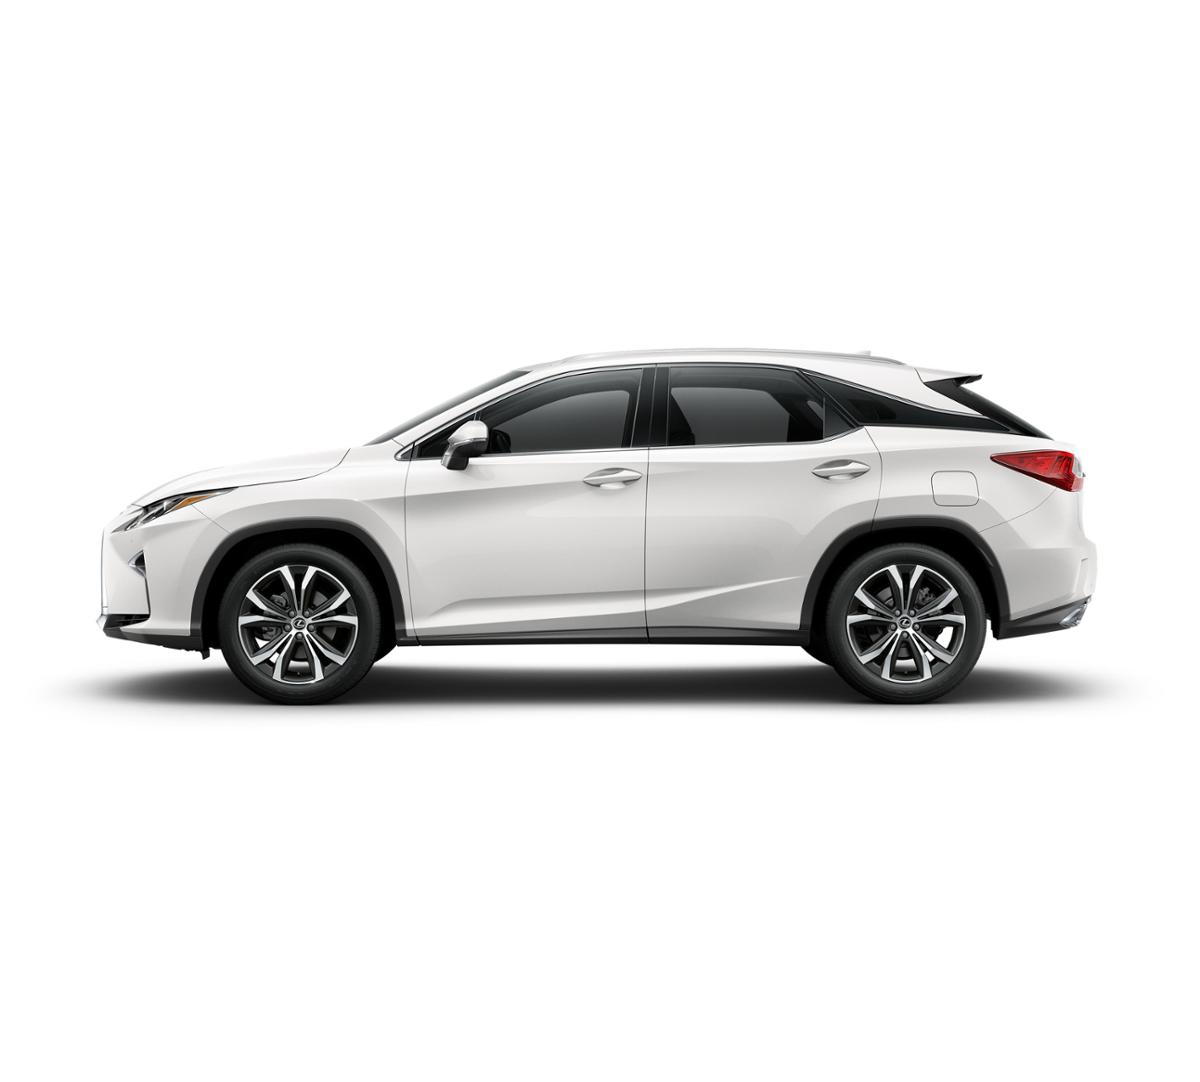 Lexus Rx 350 Lease: Oakland Eminent White Pearl 2017 Lexus RX 350 Suv For Sale